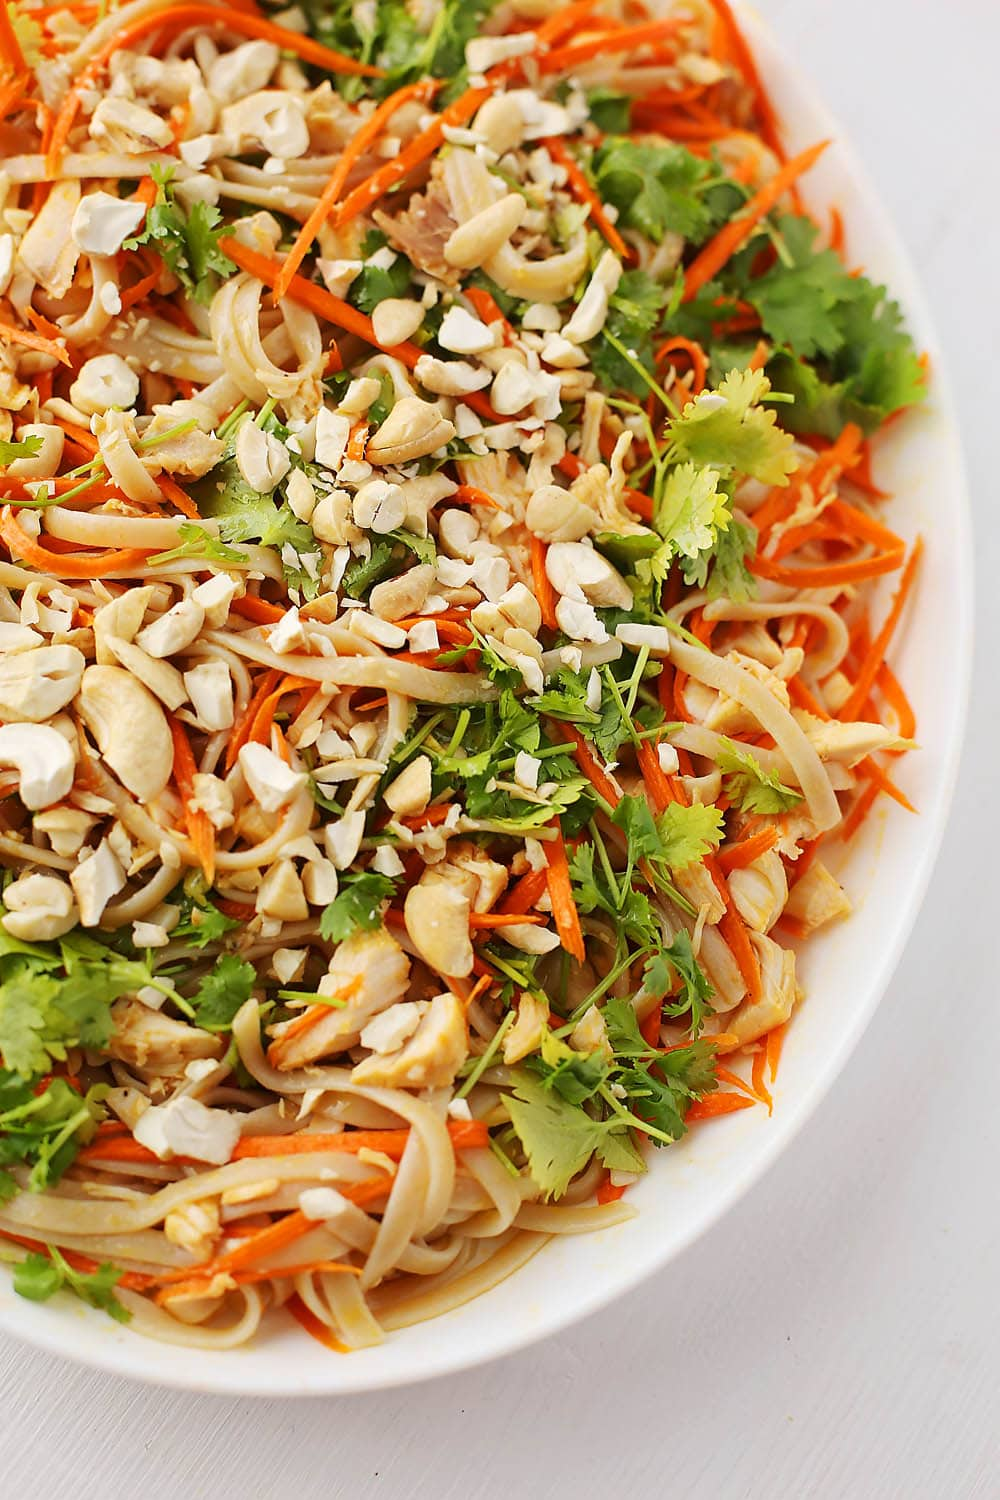 white plate with noodles, carrots, sesame oil and cilantro